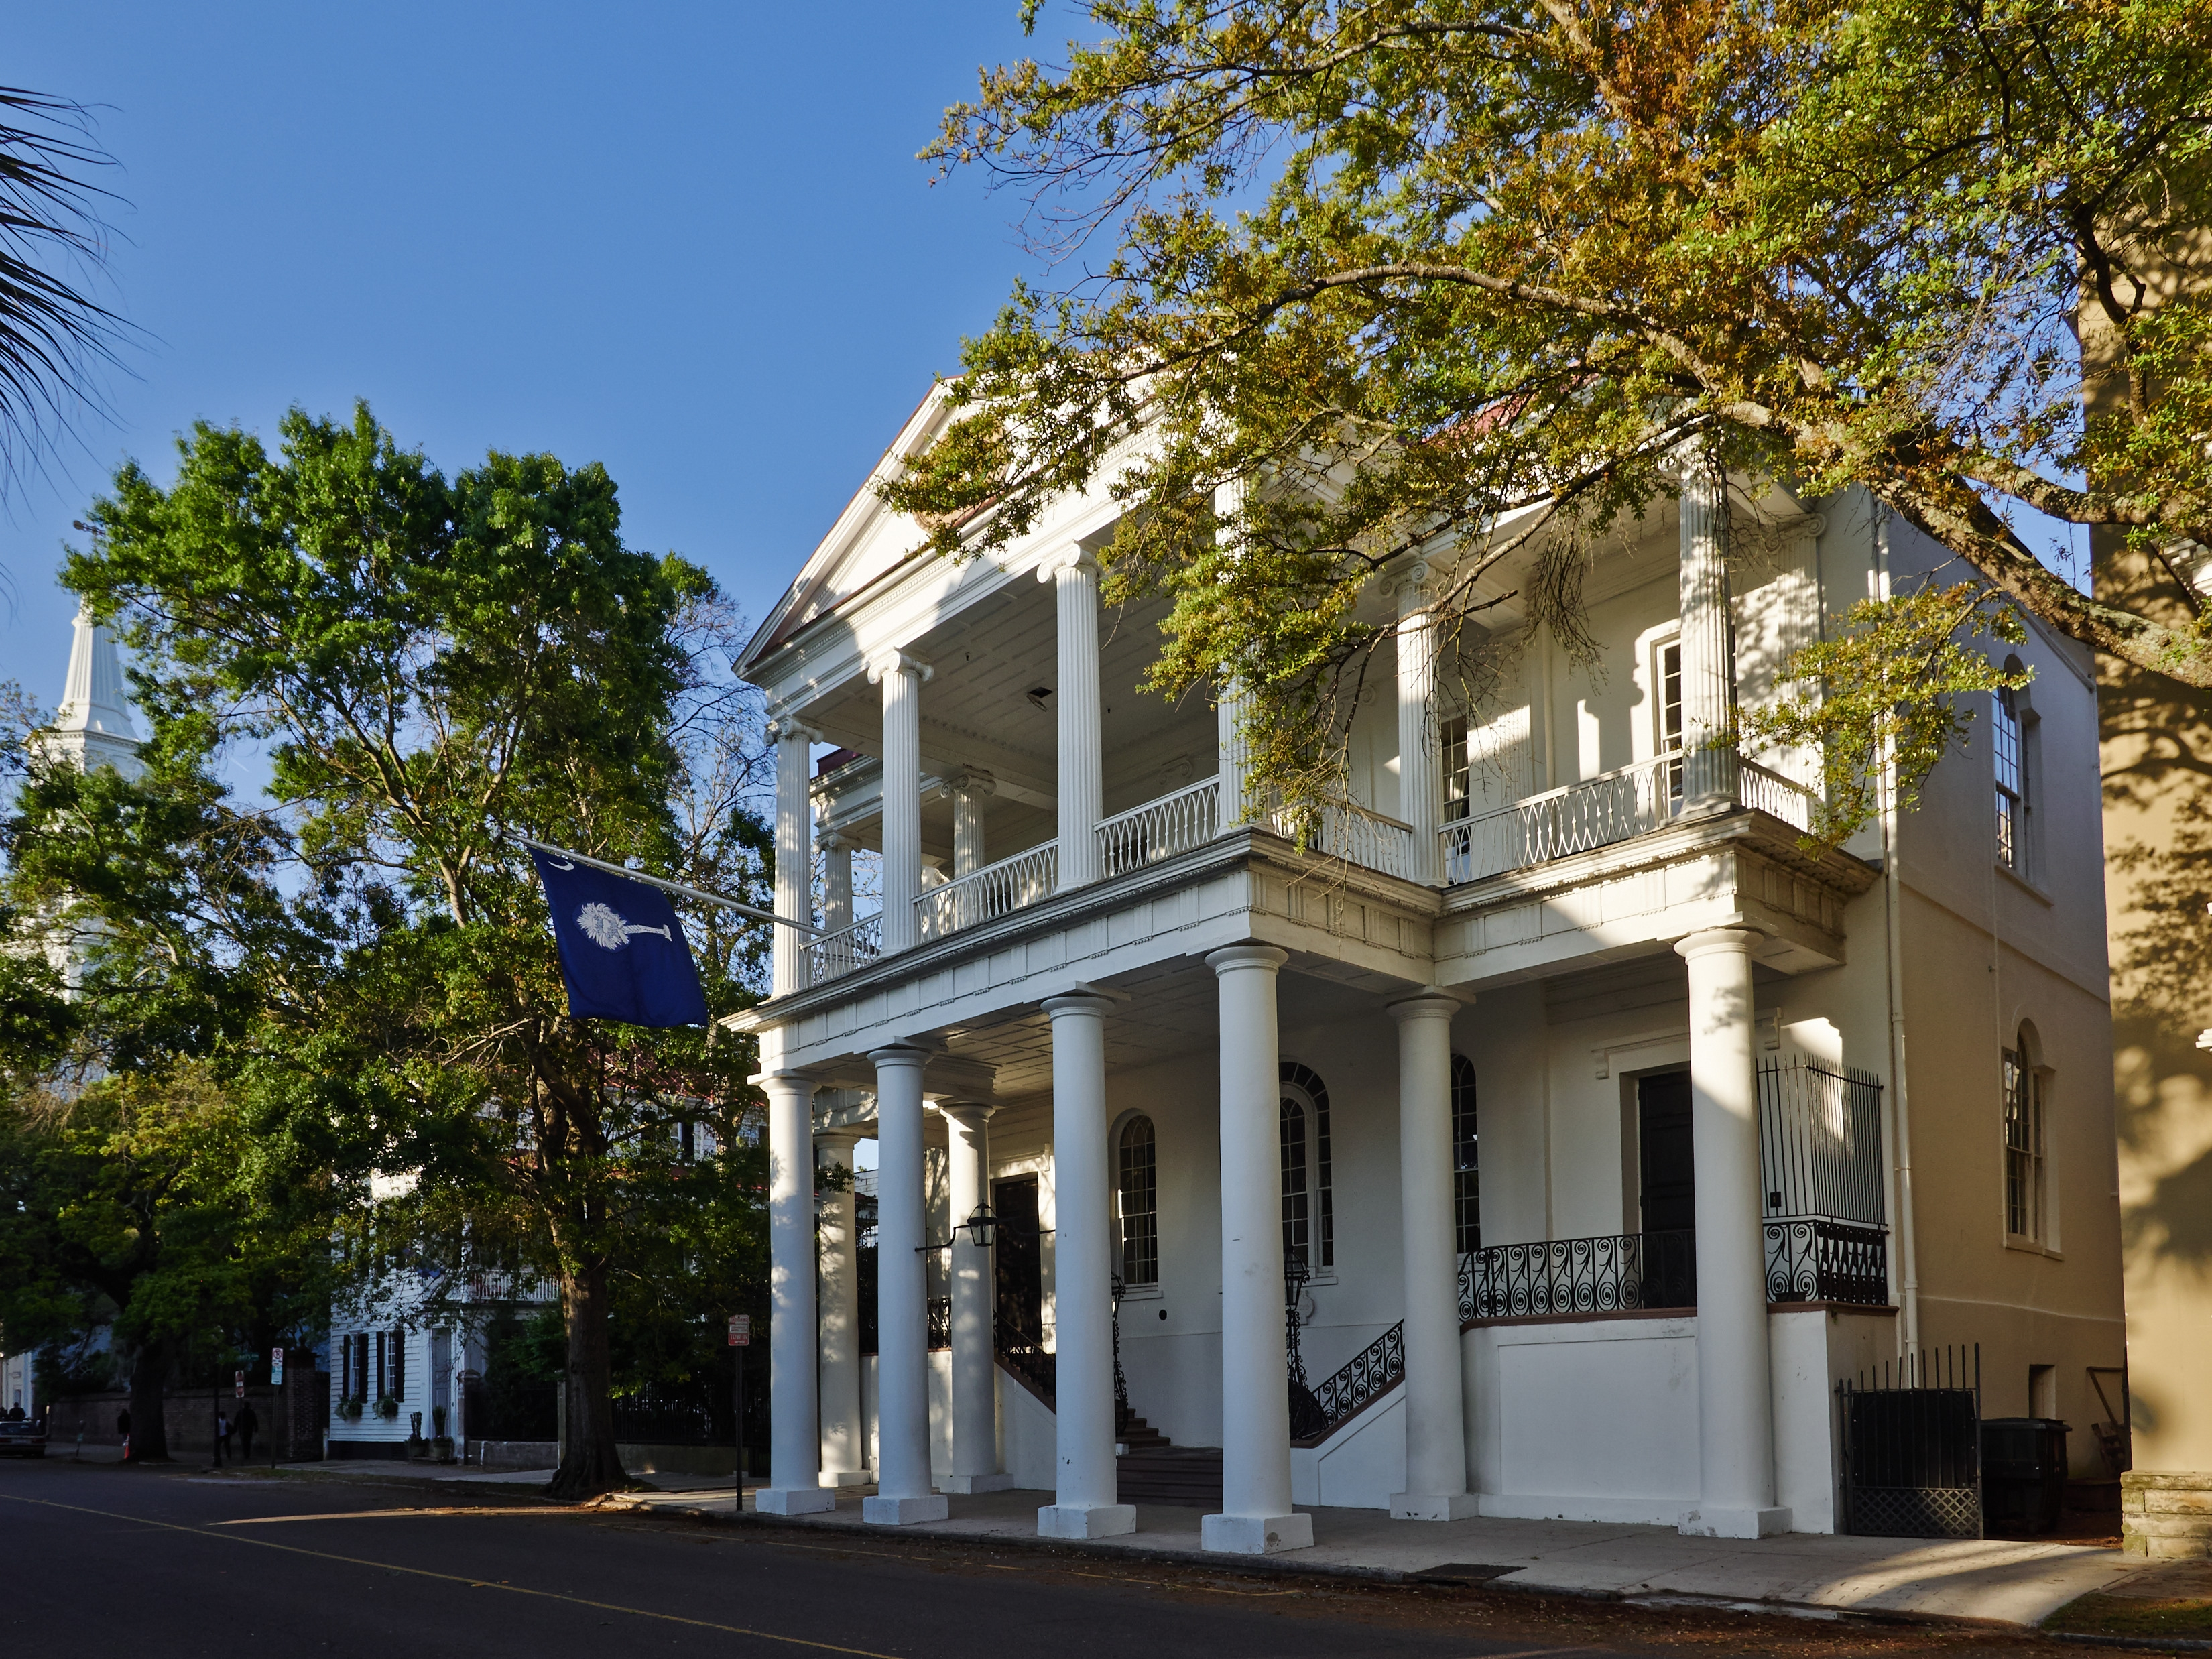 """The South Carolina Society Hall in Charleston, S.C., where many members of high society in the old-South city have been outraged by the depiction of Charleston on Bravo's reality show """"Southern Charm,"""" going so far as to organize hate-watching parties and ostracizing cast members."""